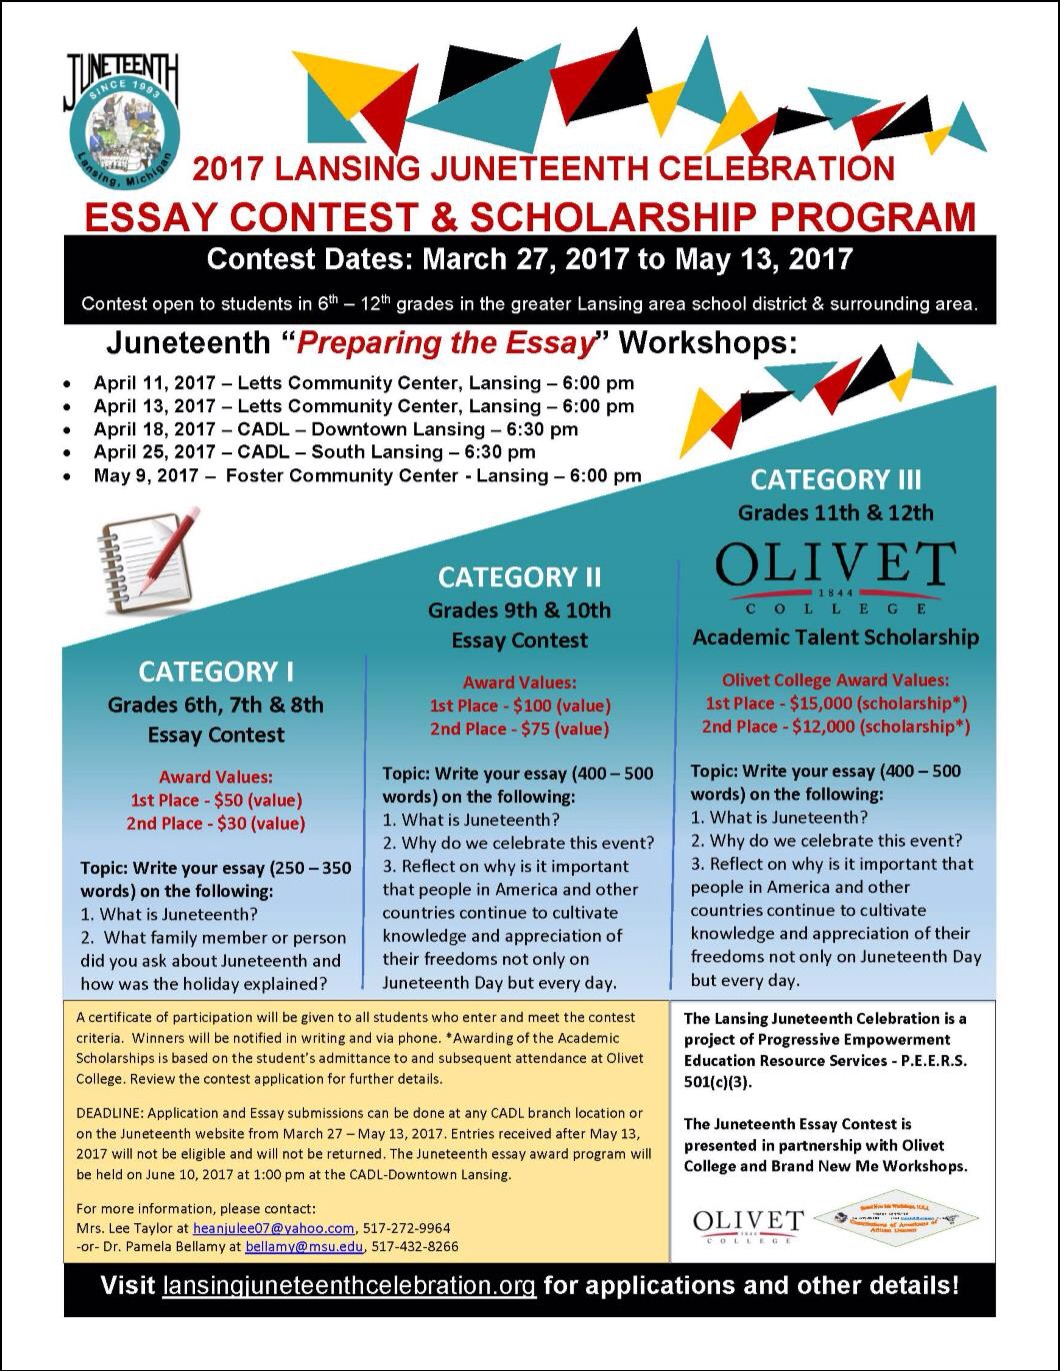 006 Scholarship Essay Contests Img 3215 Stupendous For Middle School Students High Seniors Full